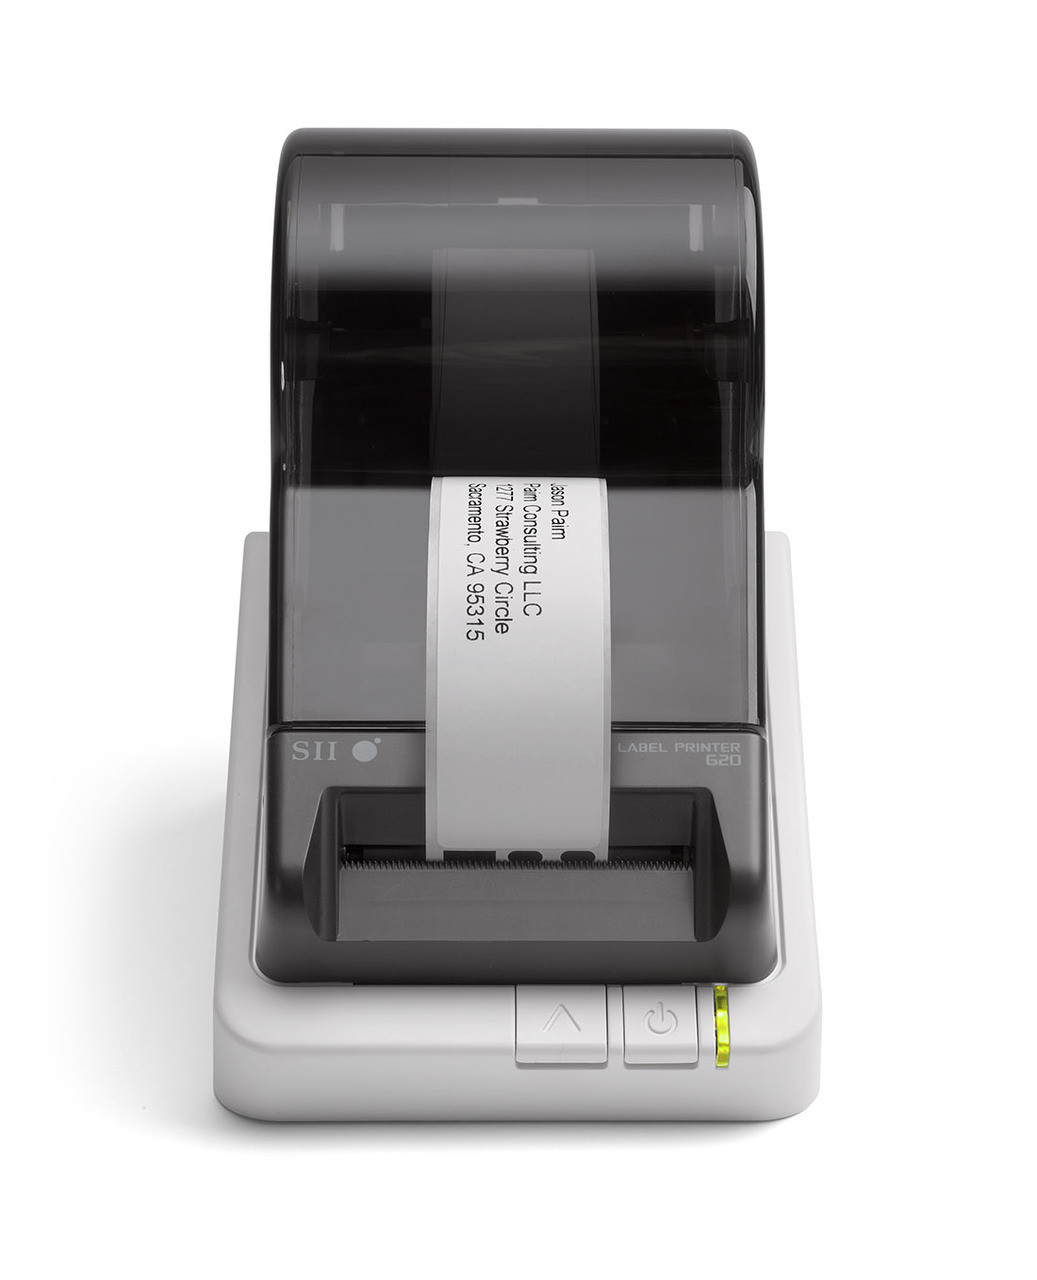 Seiko Smart Label Printer 620